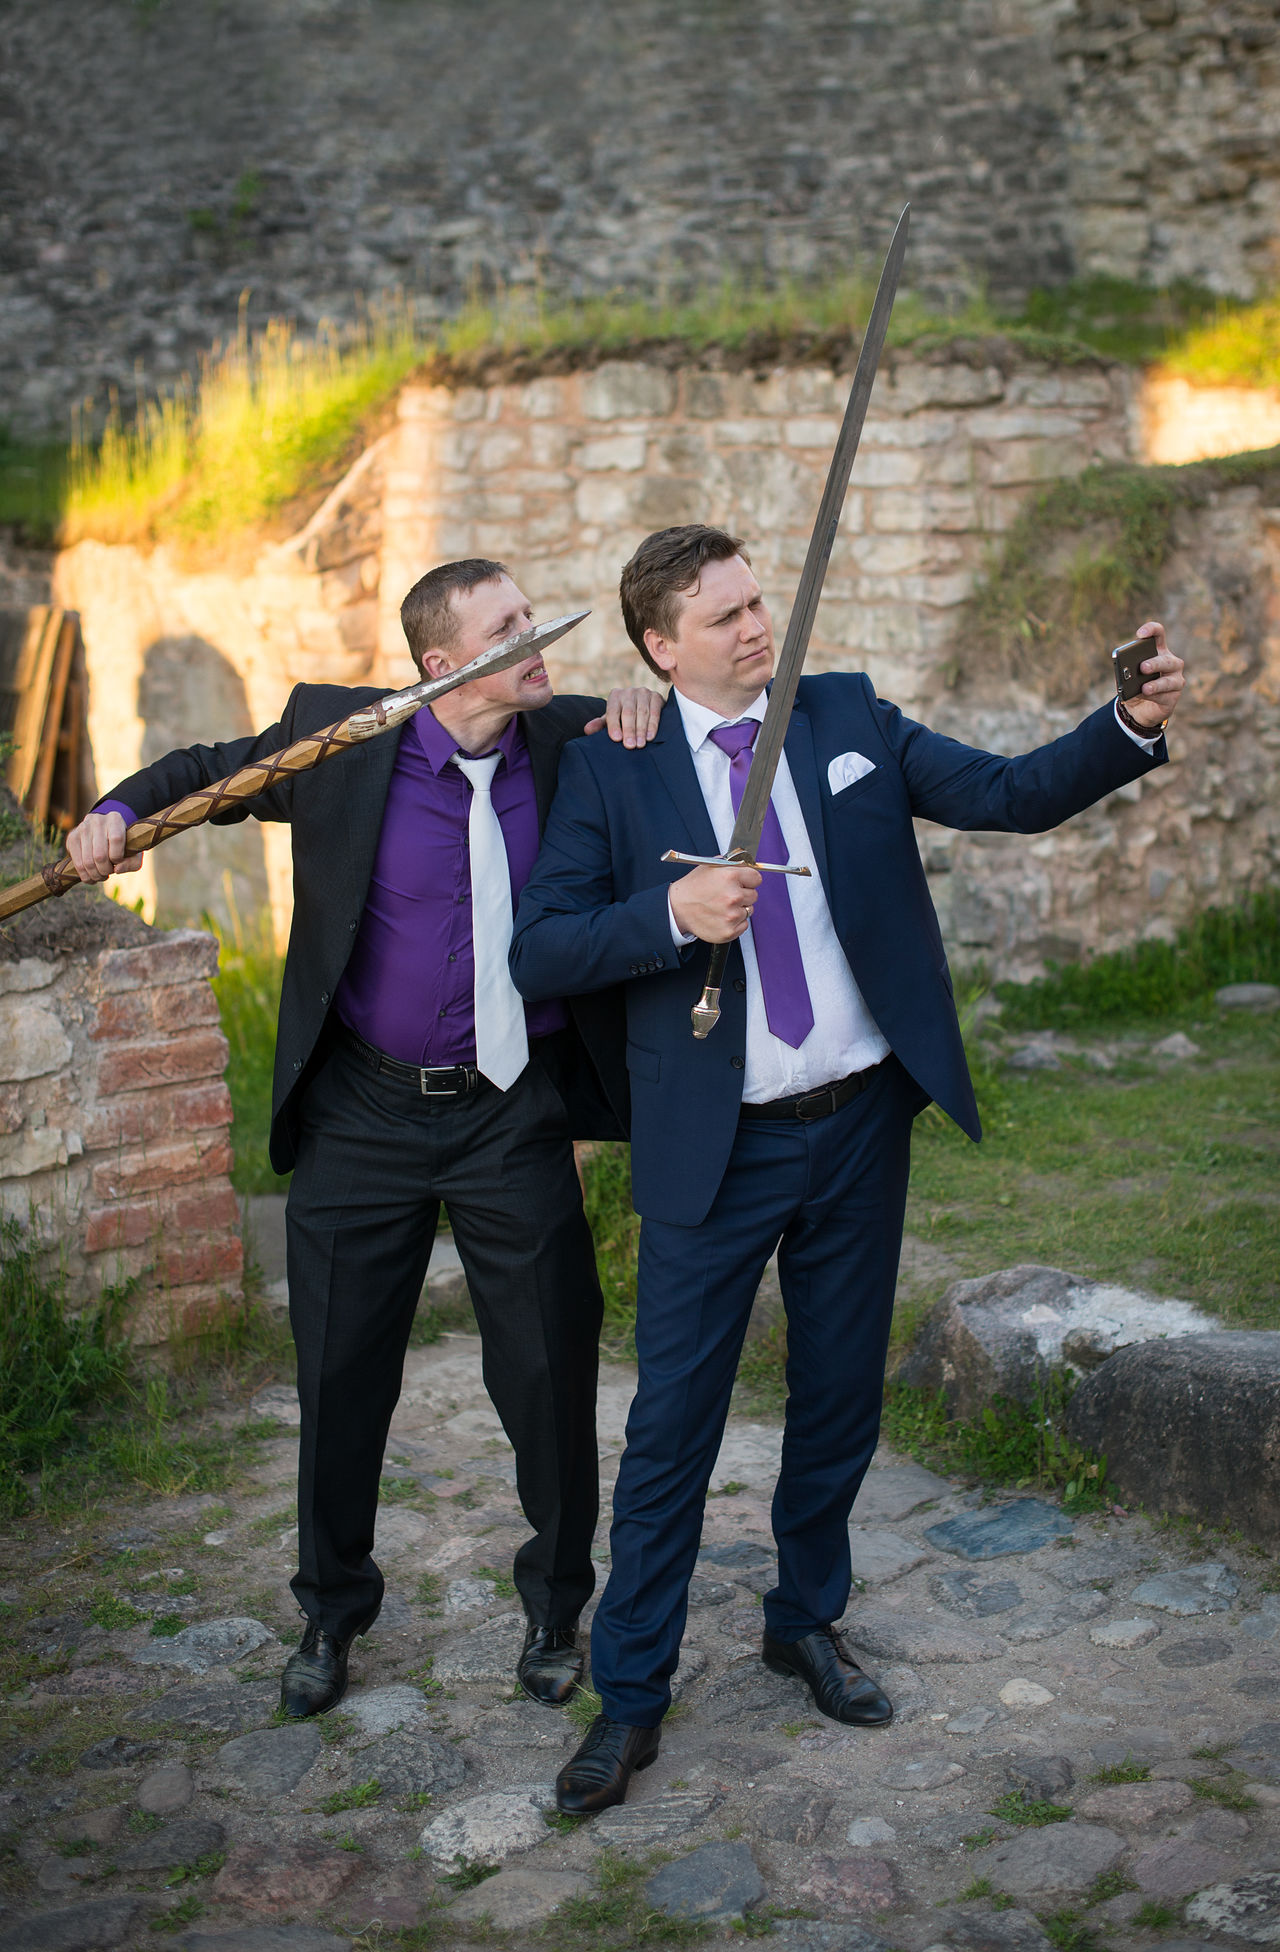 Adults Only Businessman EyeEmNewHere Full Length Humor Knights Mature Adult Mature Men Mobile Conversations Mobile Phone Mobile Photography Sefie Selfies Smart Phone Standing Suit Sword Swords Teamwork Tehnology Togetherness Two People Video Well-dressed